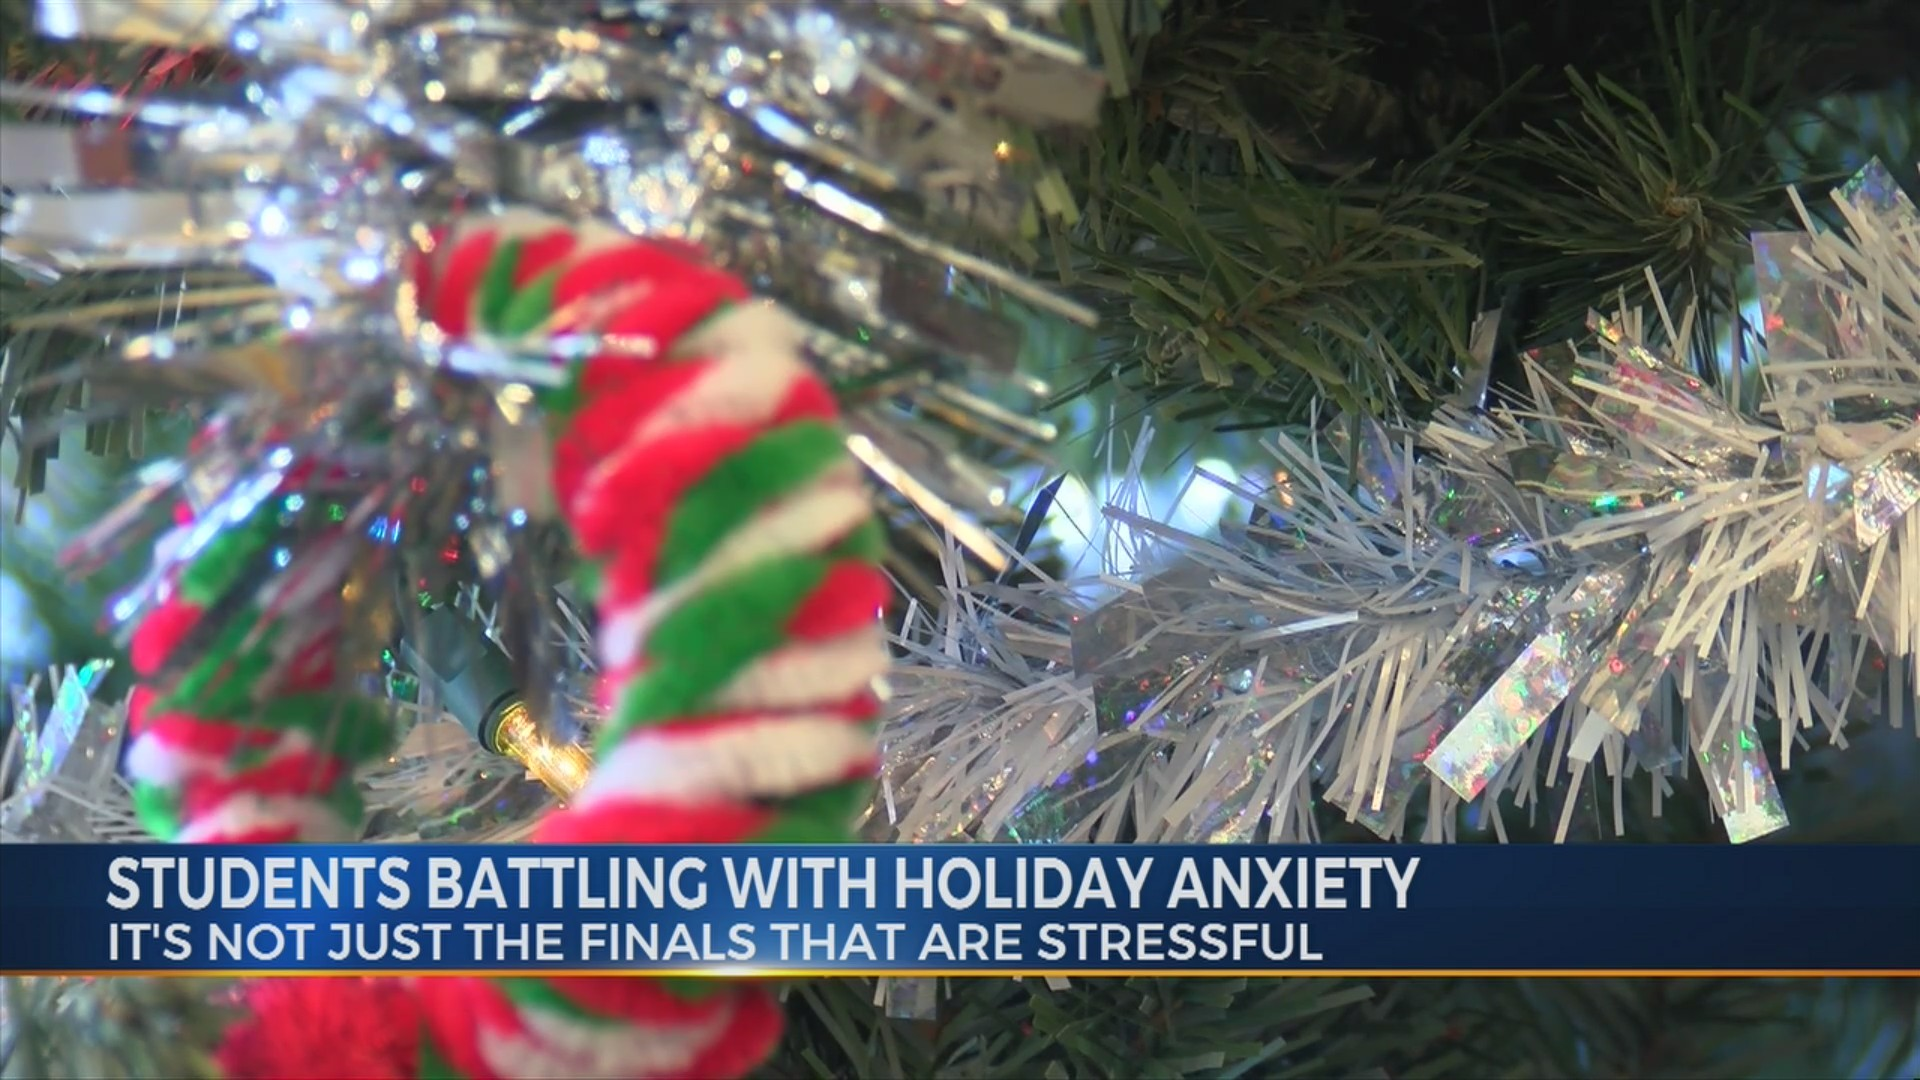 Students Battling with Holiday Anxiety